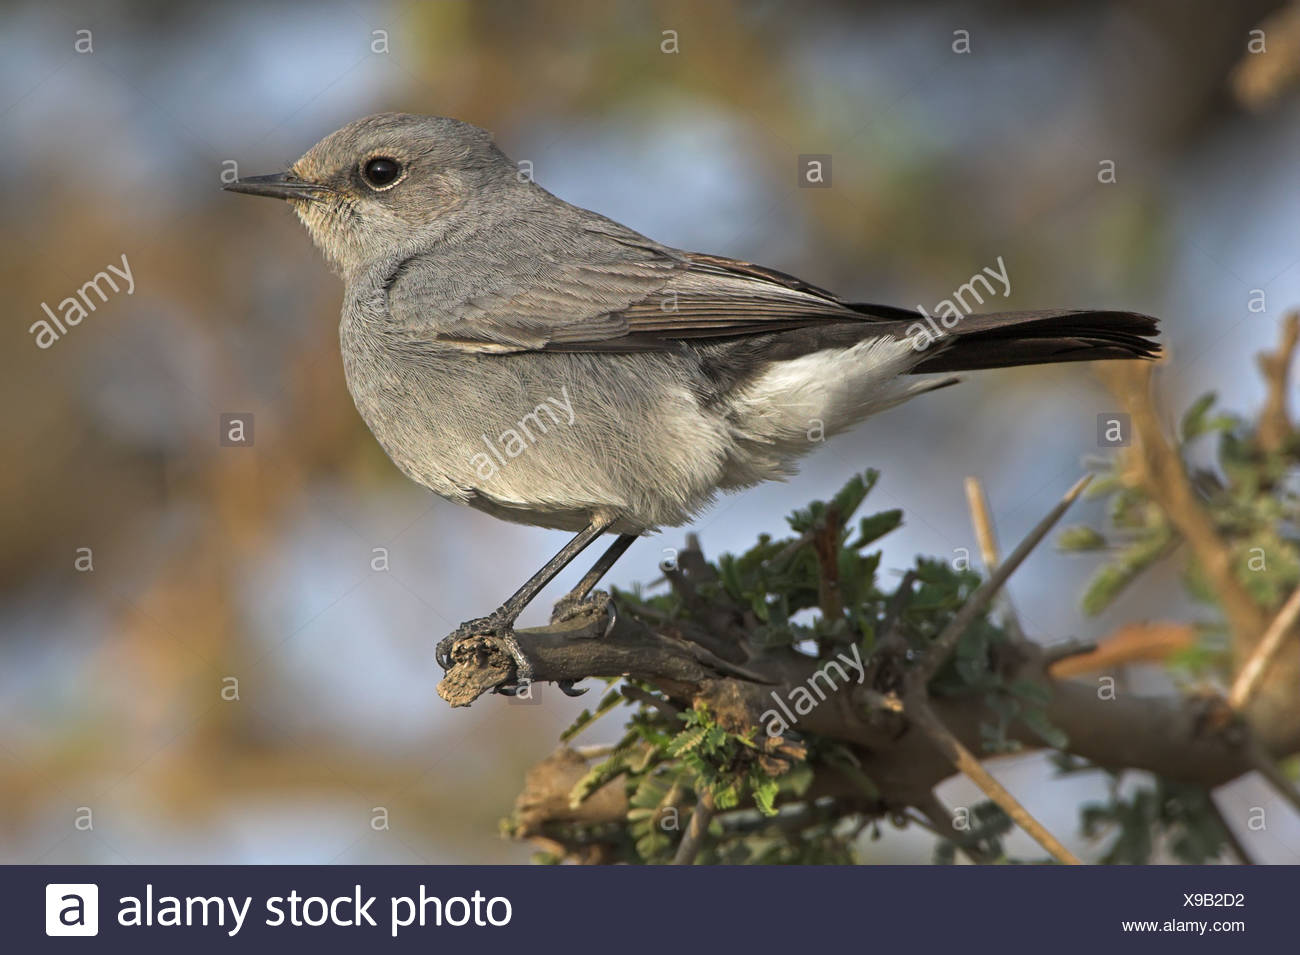 Blackstart (Cercomela melanura) sitting on a twig, close-up - Stock Image